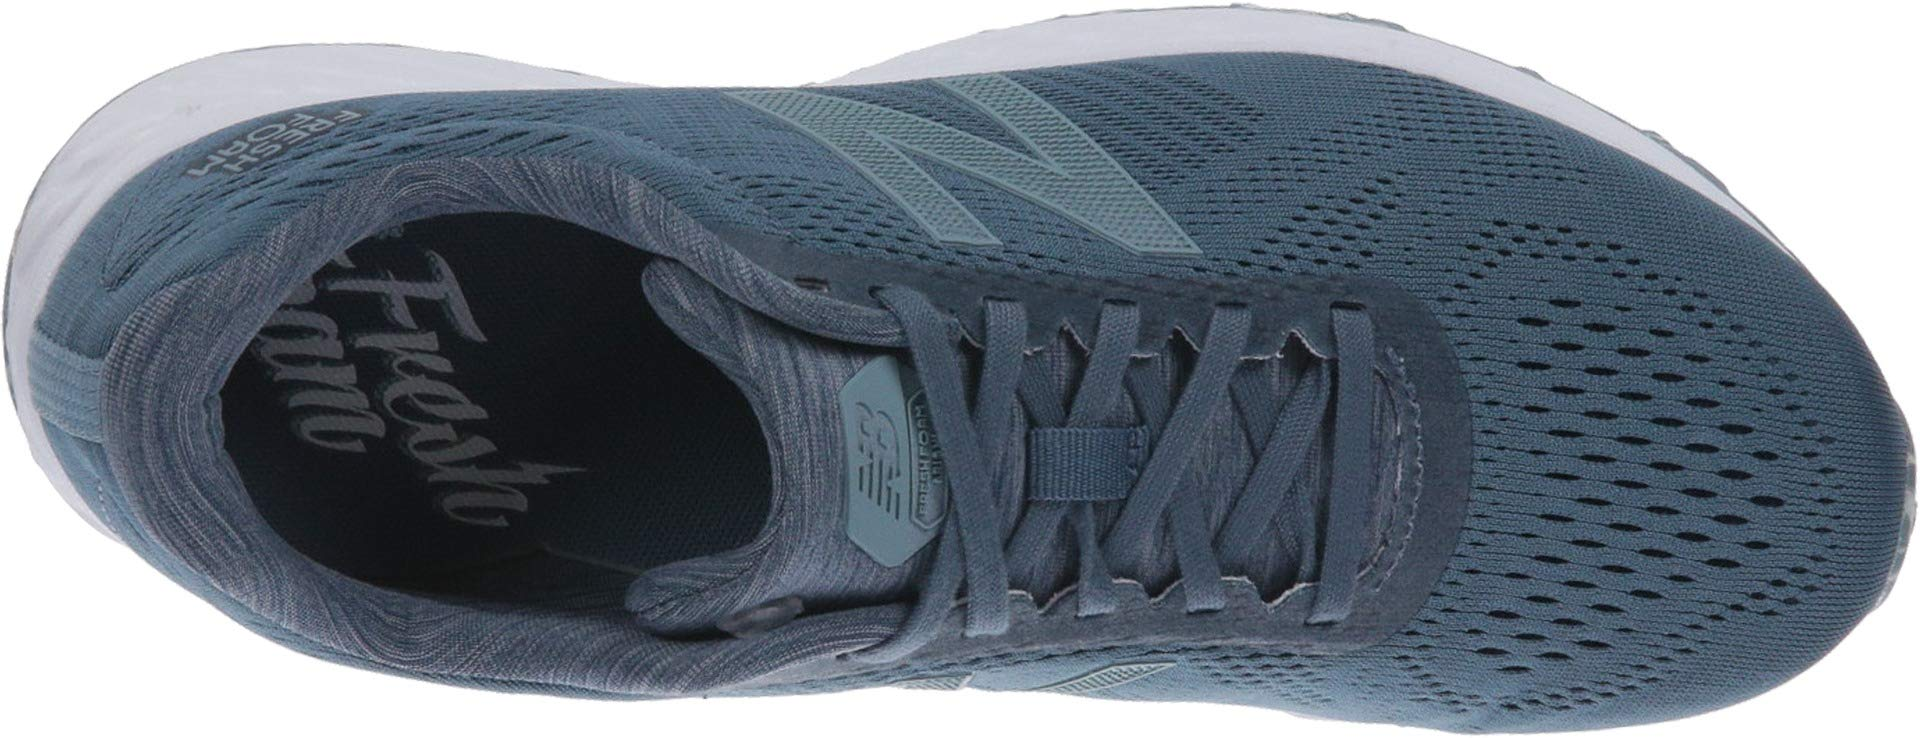 New Balance Women's Fresh Foam Arishi V1 Running Shoe, Grey, 5 B US by New Balance (Image #2)